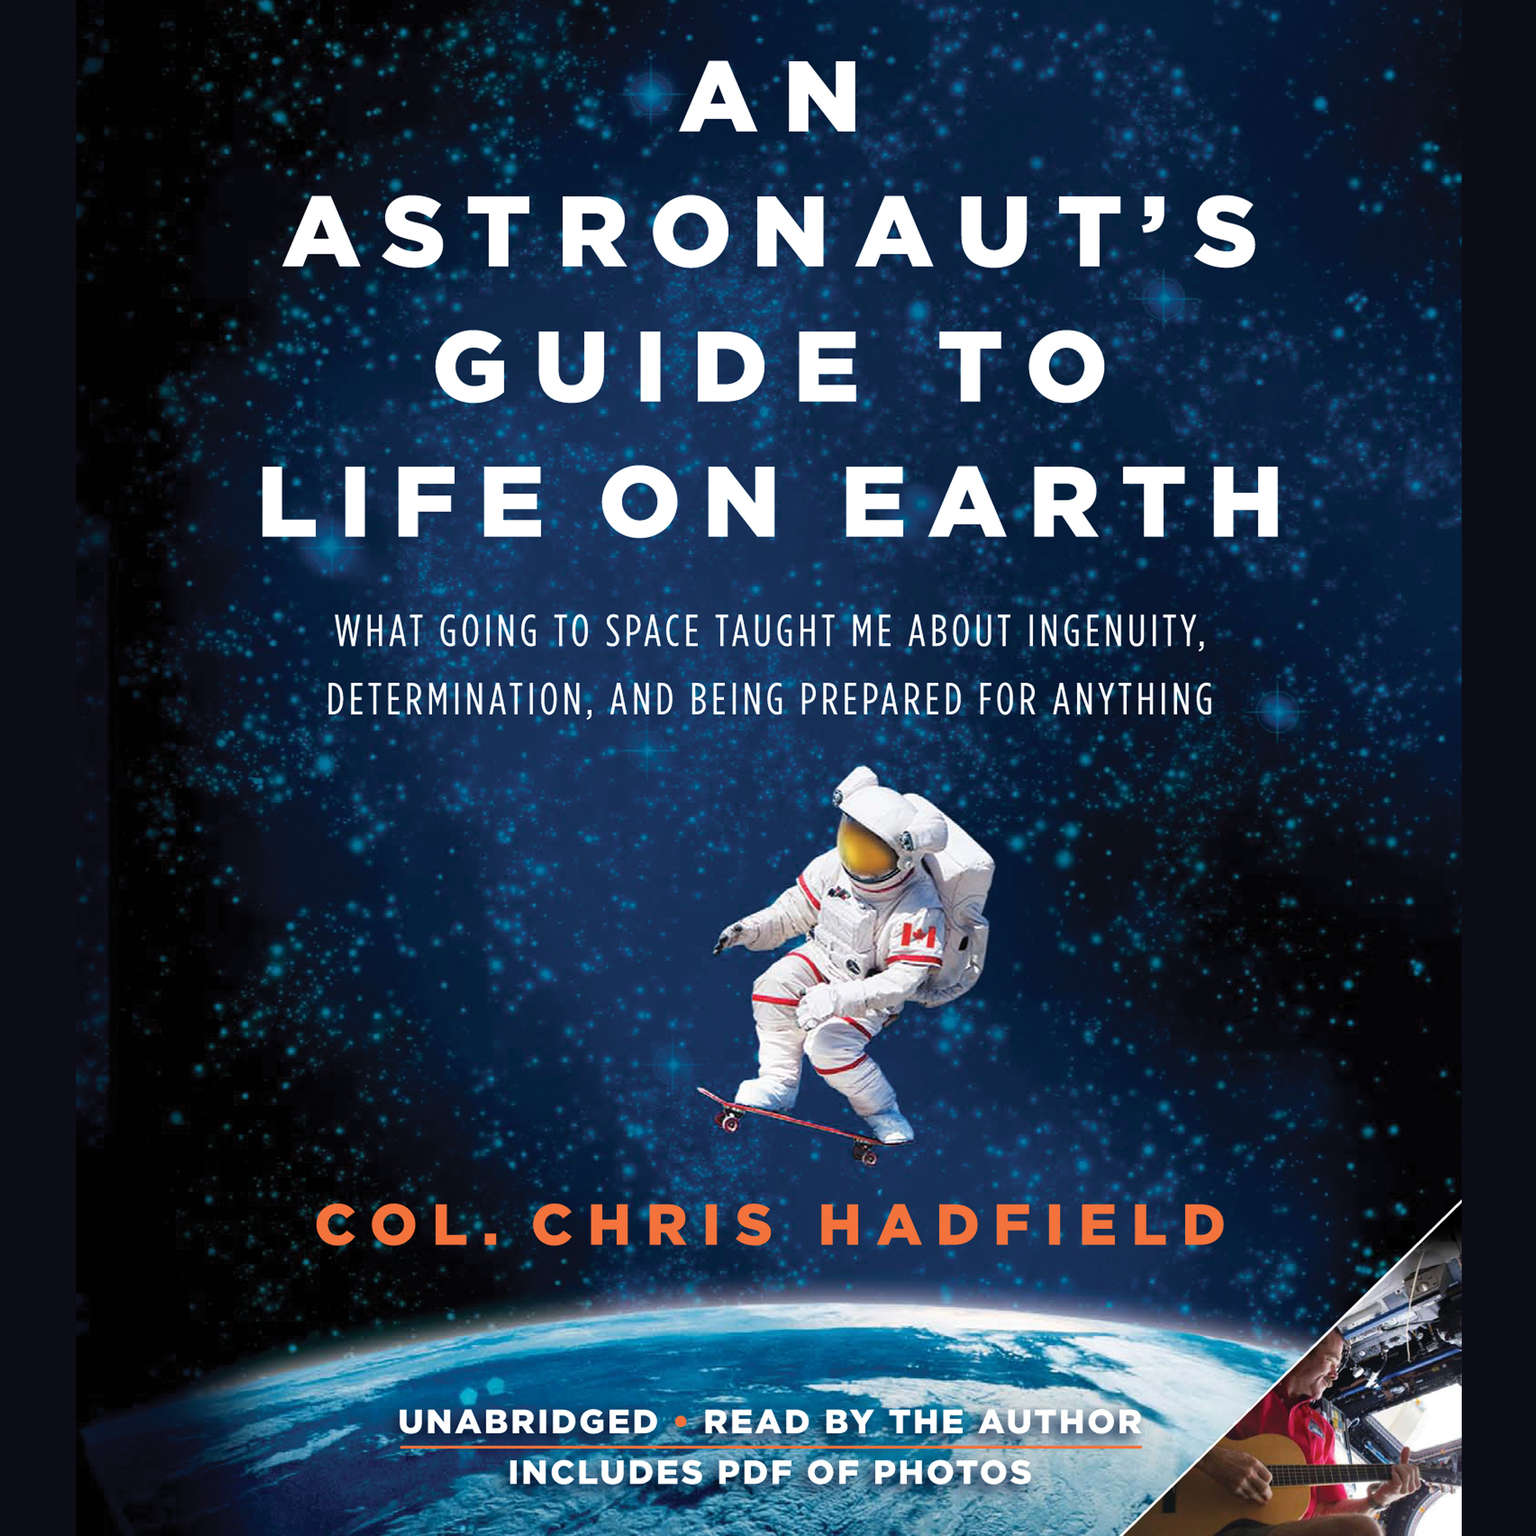 An Astronaut's Guide to Life on Earth - Audiobook | Listen ...